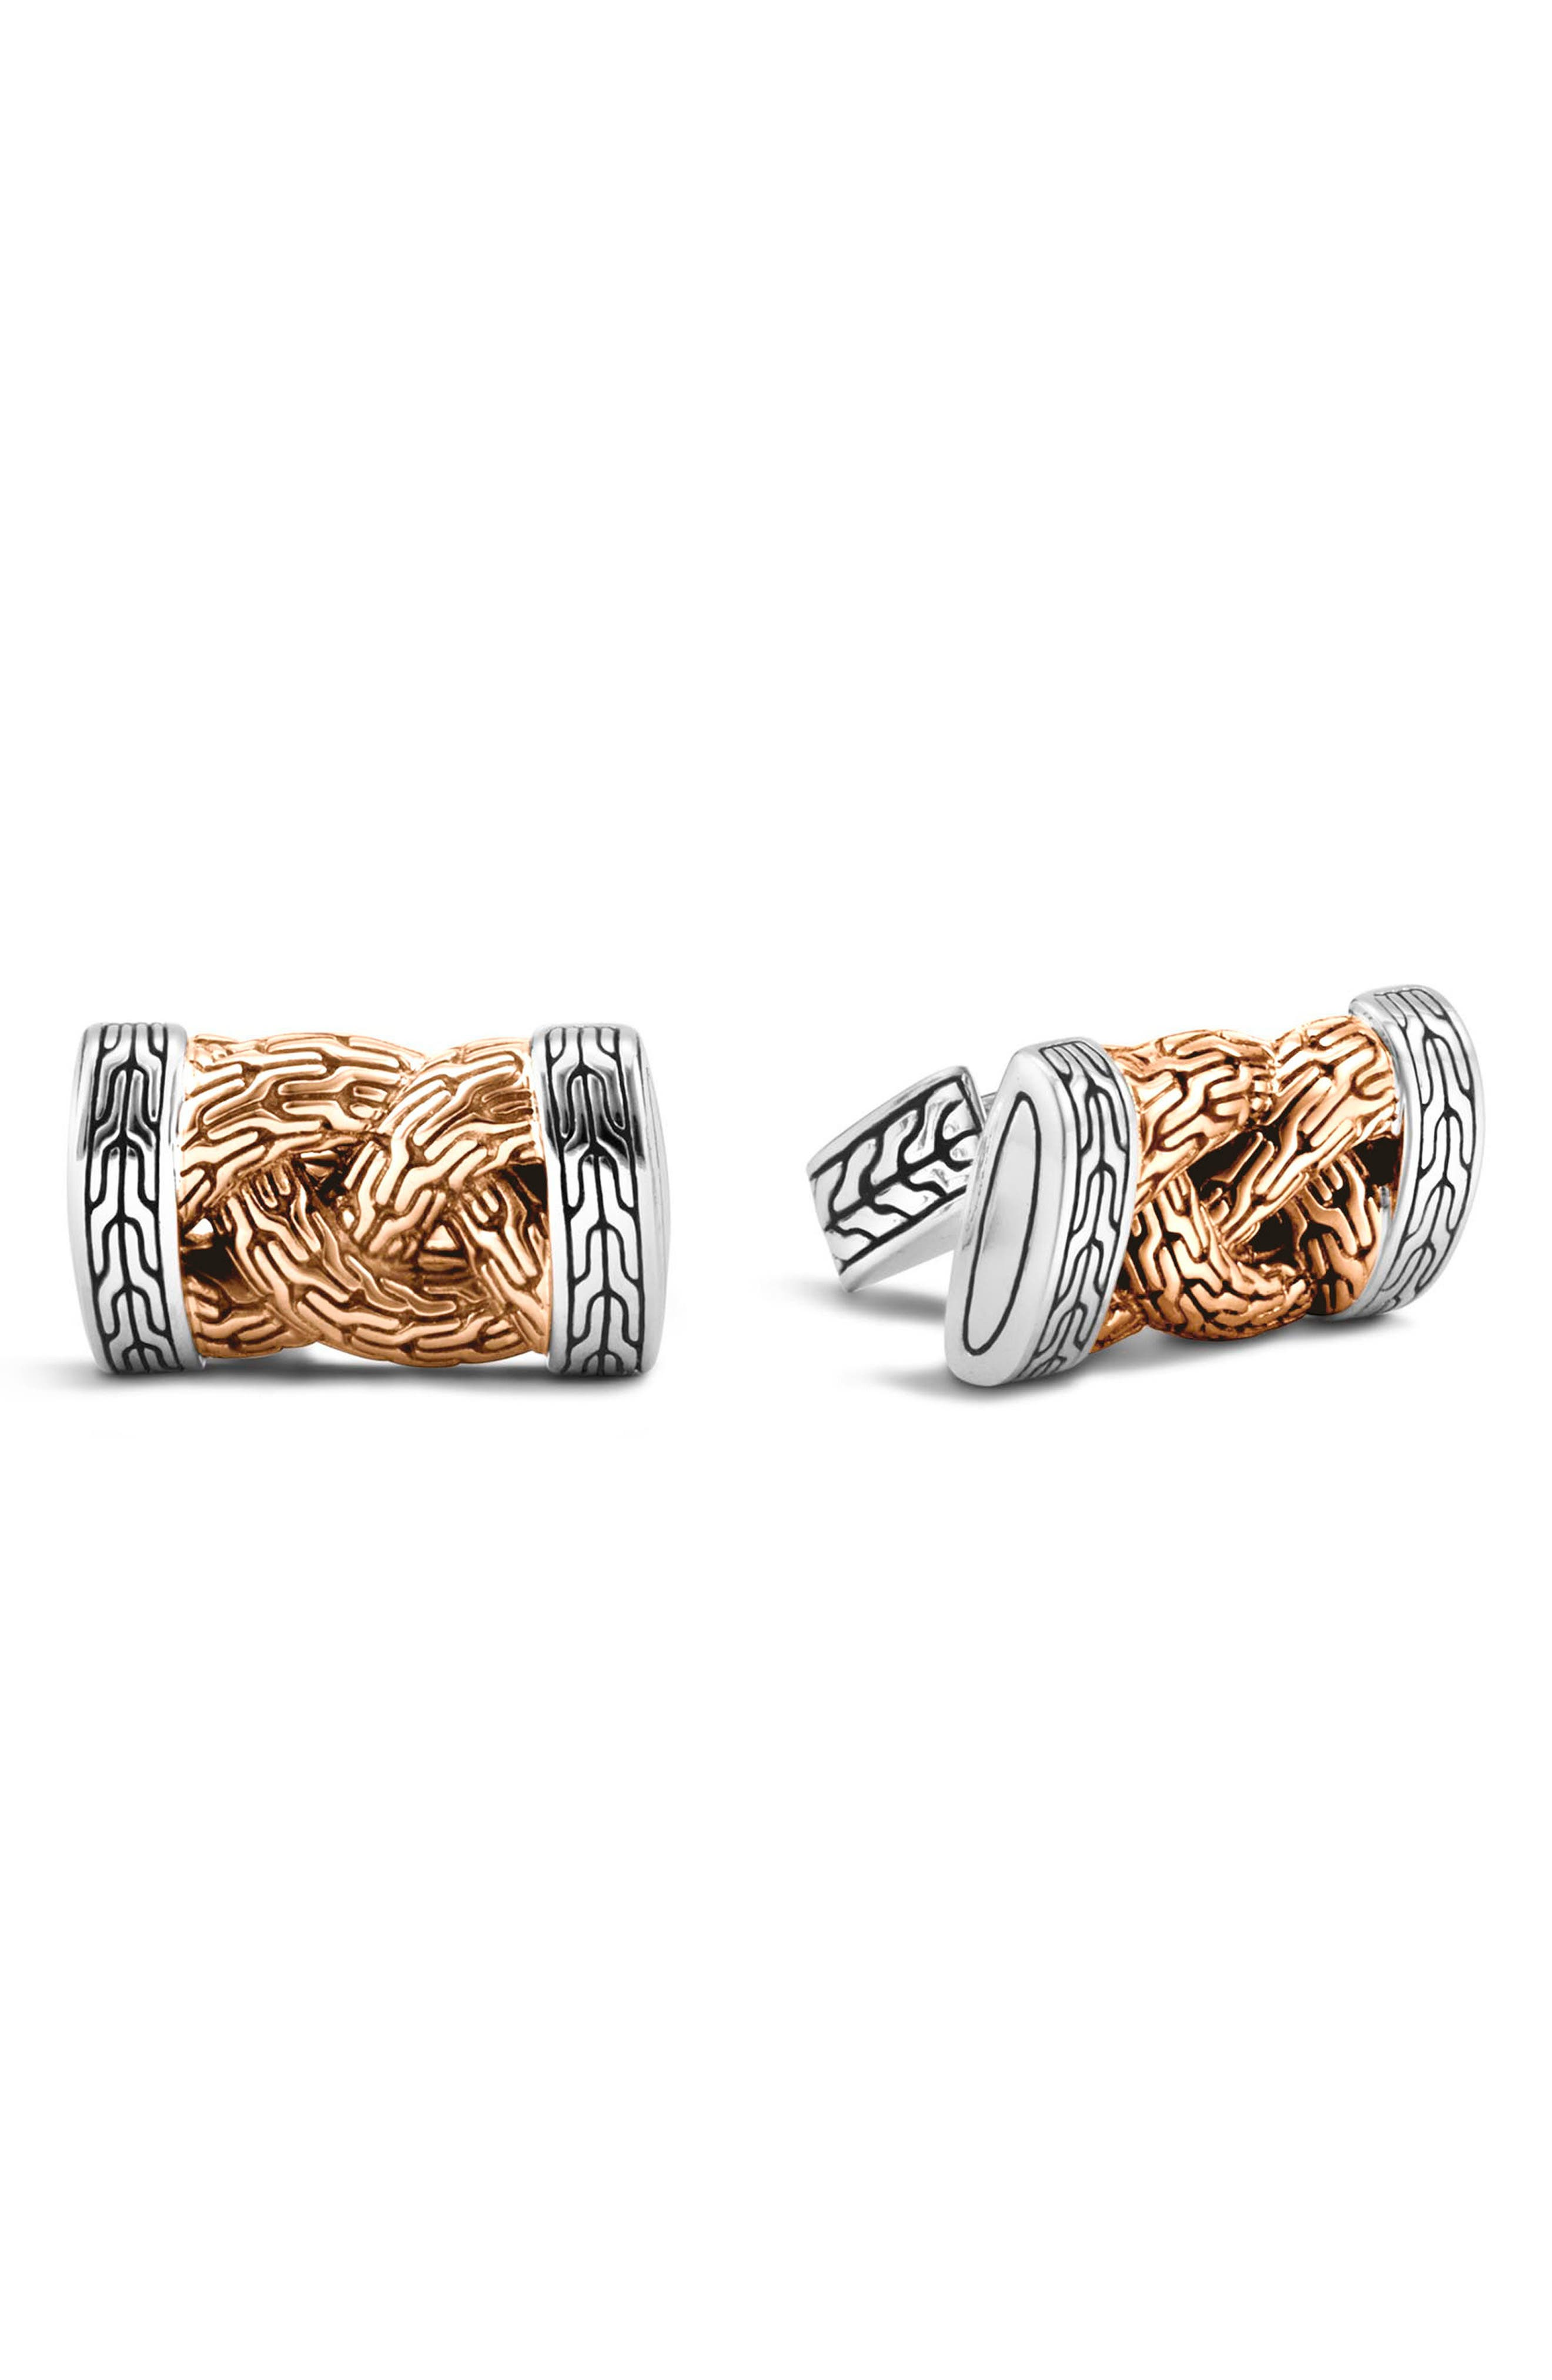 Silver & Bronze Cuff Links,                             Main thumbnail 1, color,                             SILVER